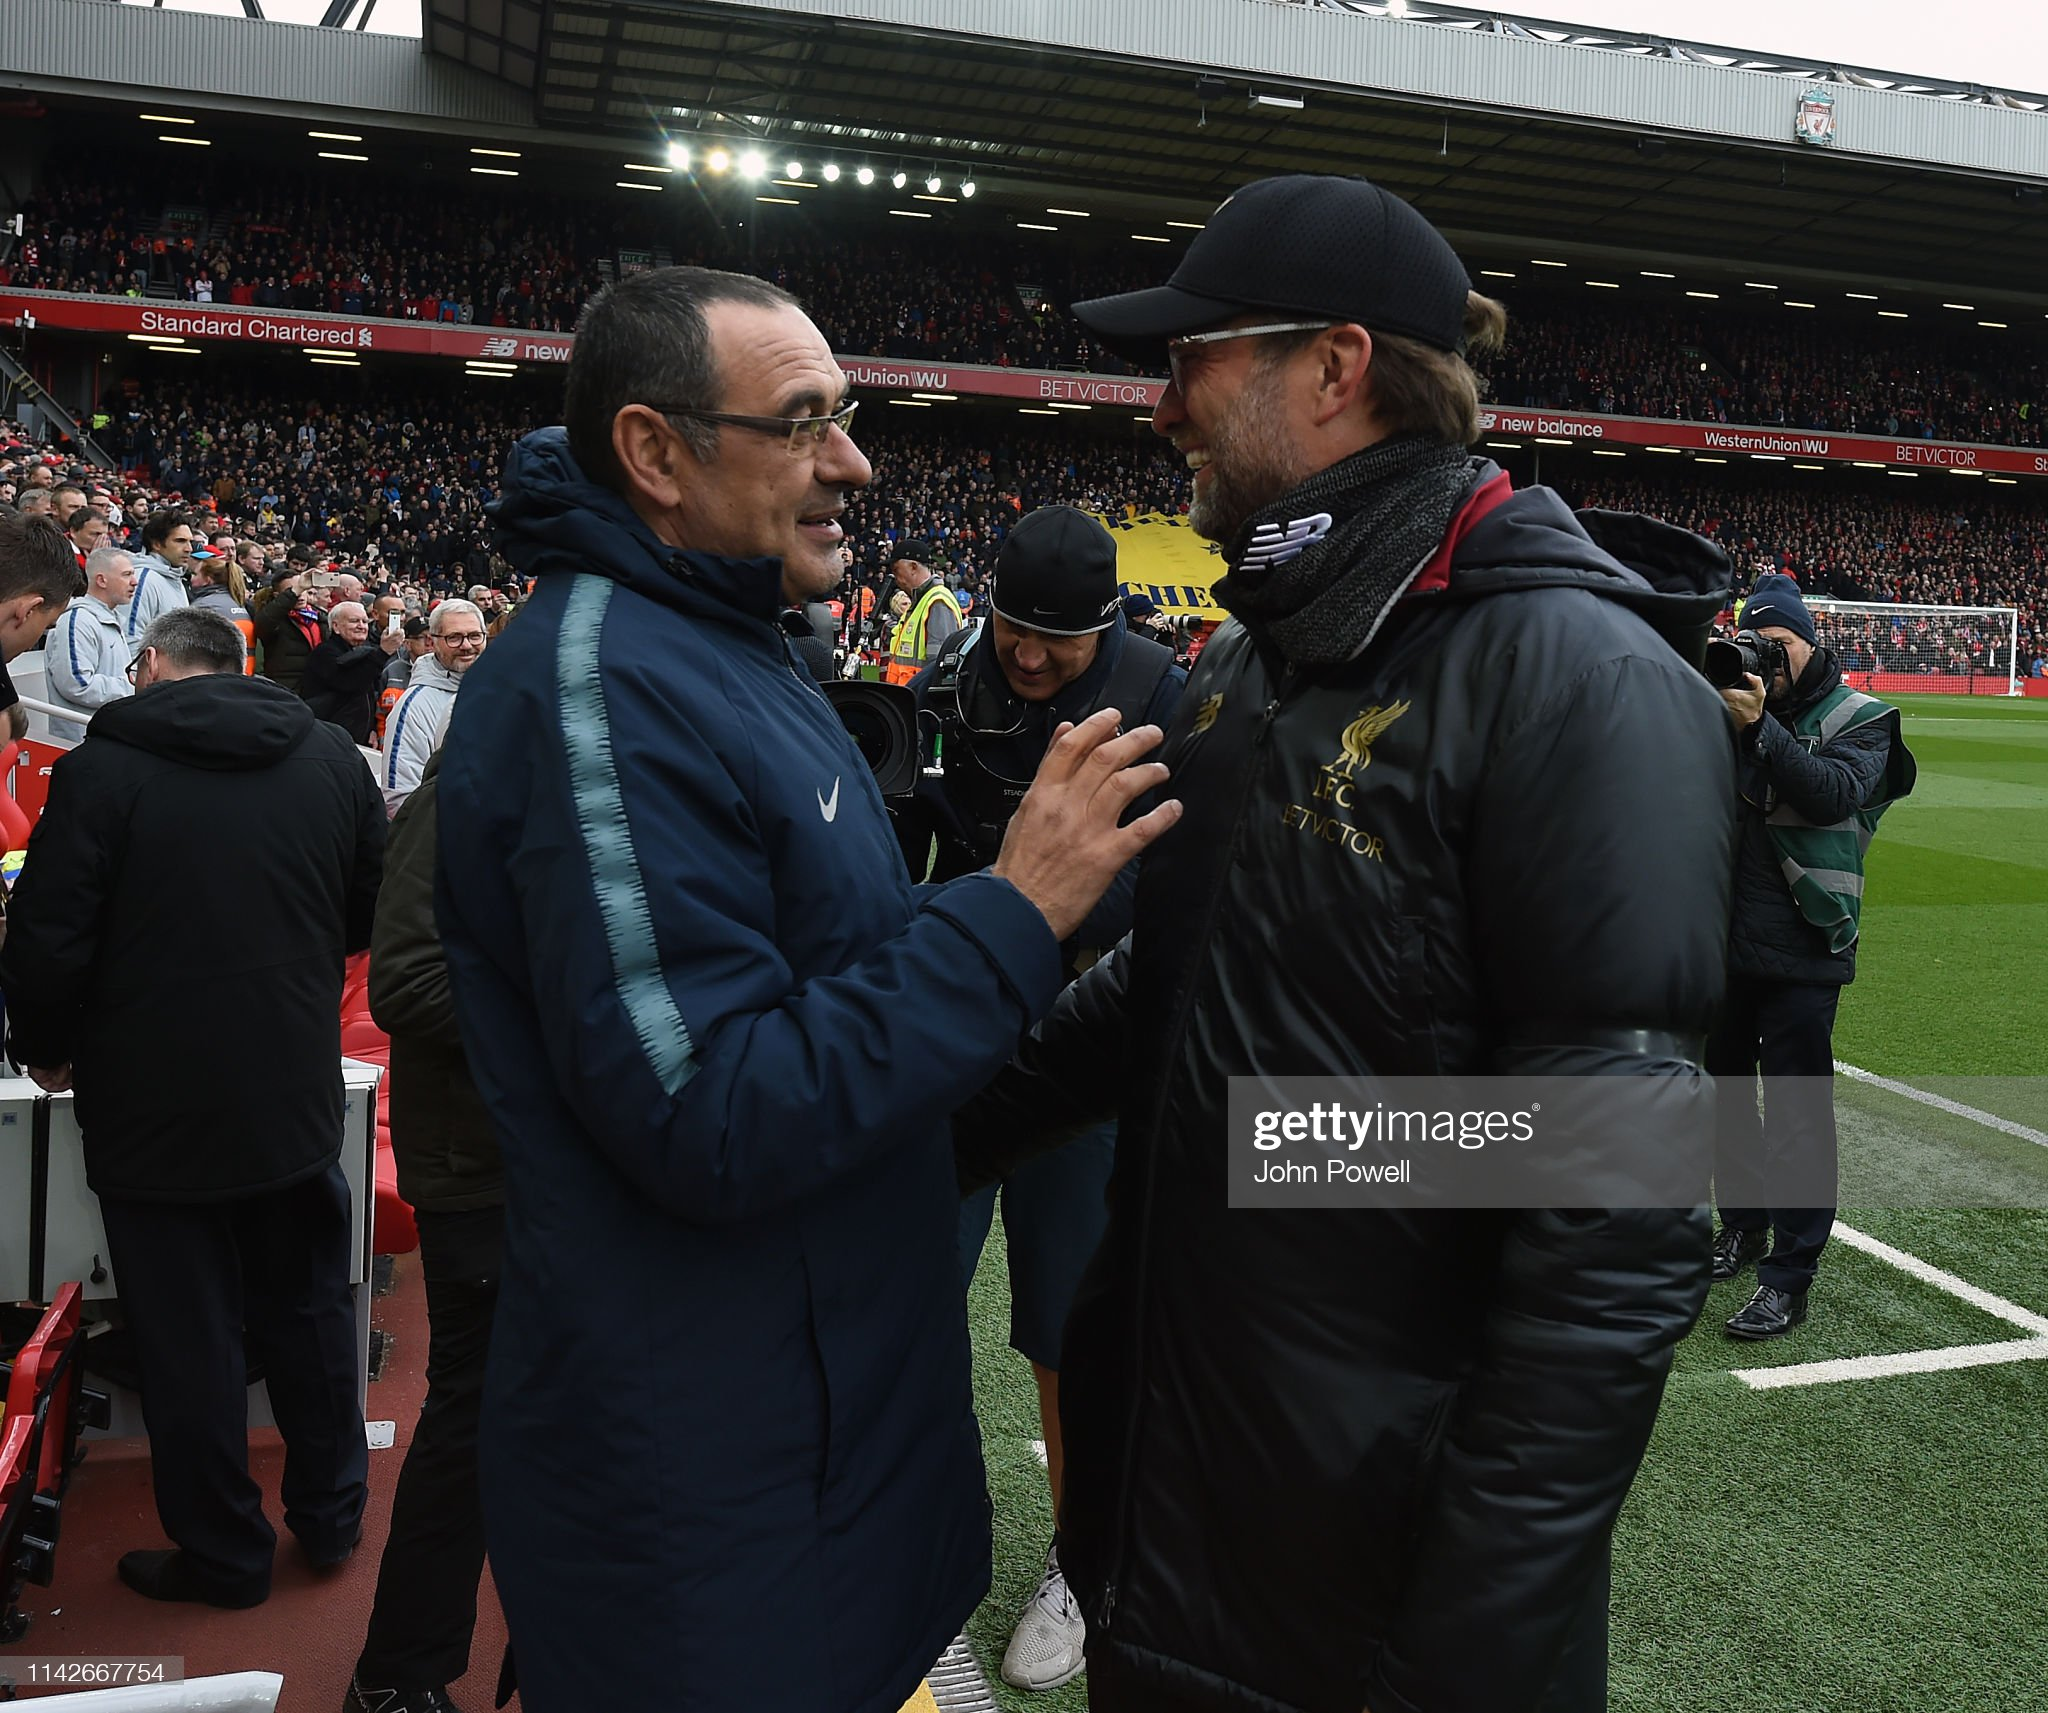 ¿Cuánto mide Maurizio Sarri? - Altura - Real height Jurgen-klopp-manager-of-liverpool-with-chelseas-maurizio-sarri-during-picture-id1142667754?s=2048x2048